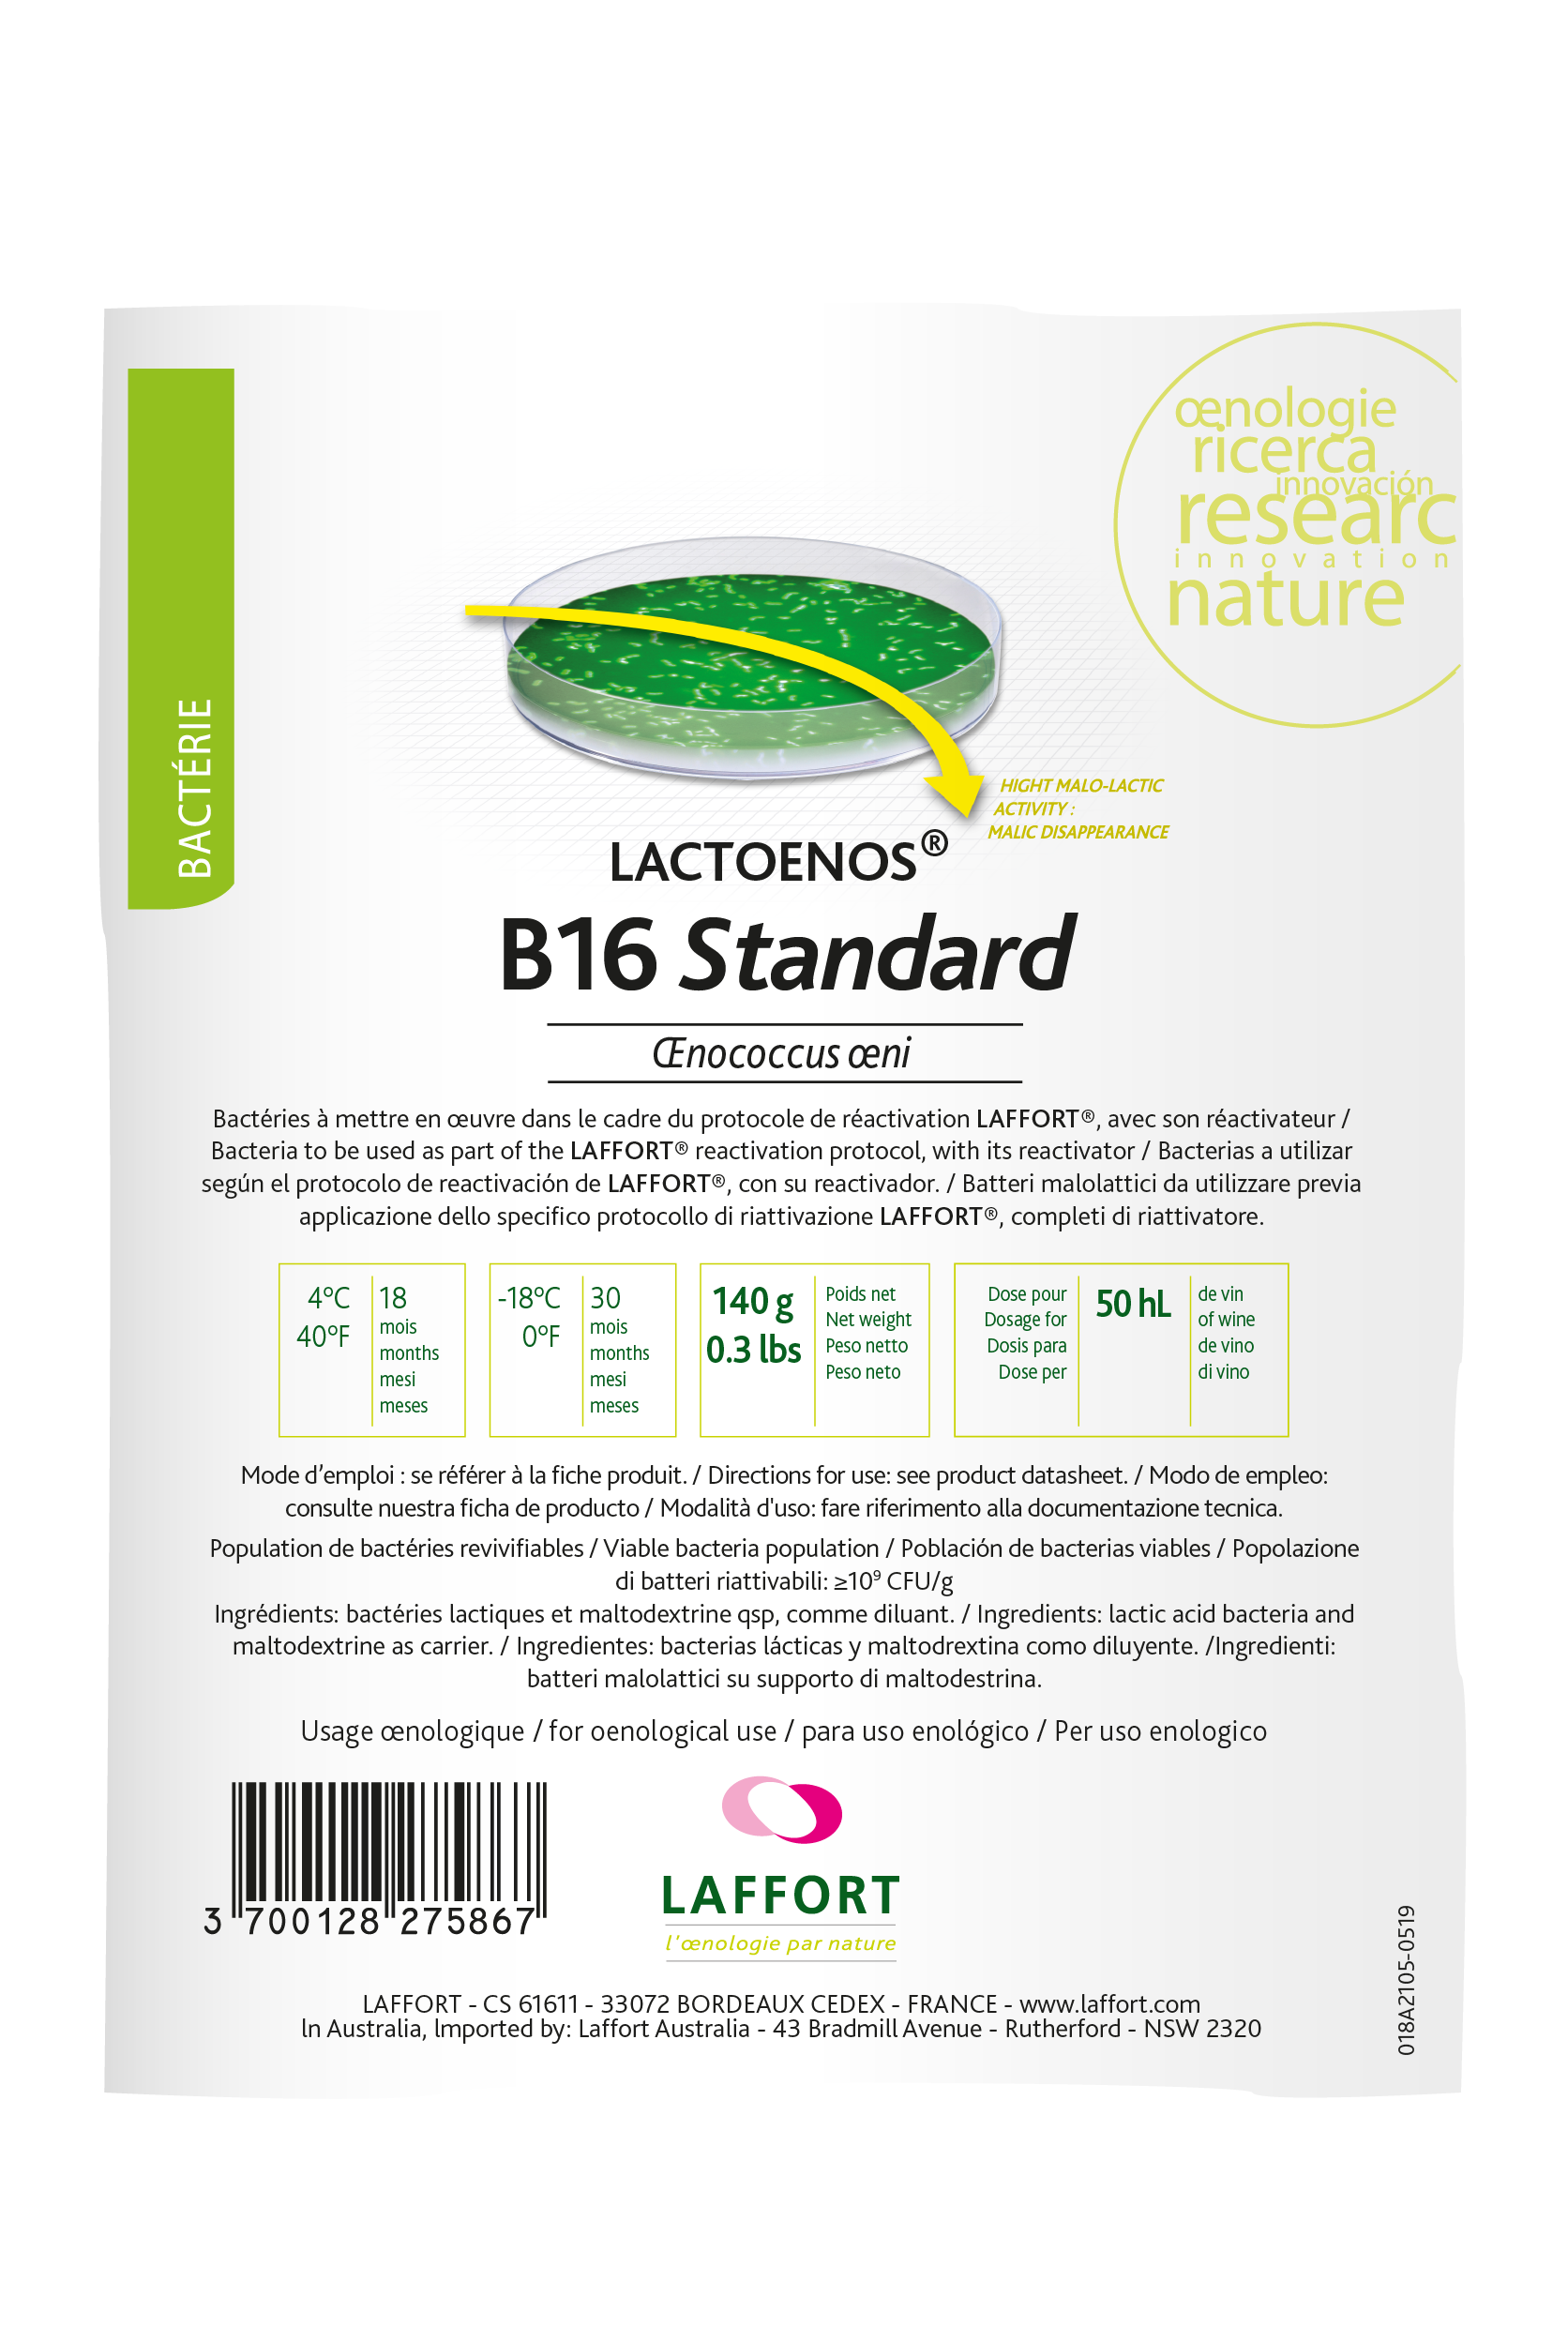 LACTOENOS® B16 STANDARD AND ITS REACTIVATOR